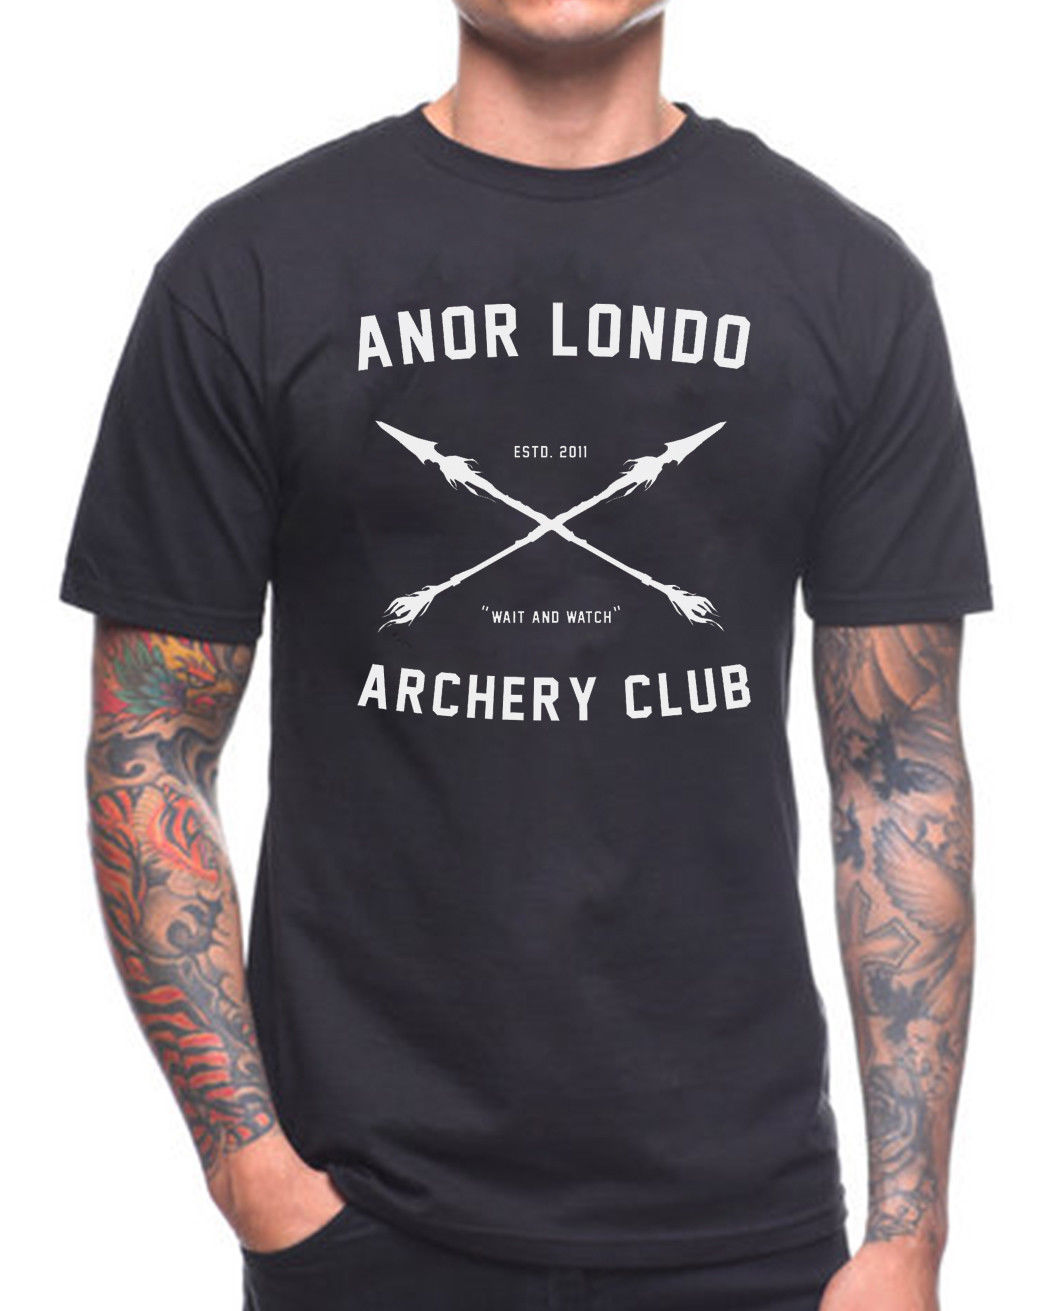 ANOR <font><b>LONDO</b></font> ARCHERY CLUB T SHIRT DARK SOULS XBOX GAME GAMER BIRTHDAY PRESENT Male Hip Hop funny Tee Shirts cheap wholesale image